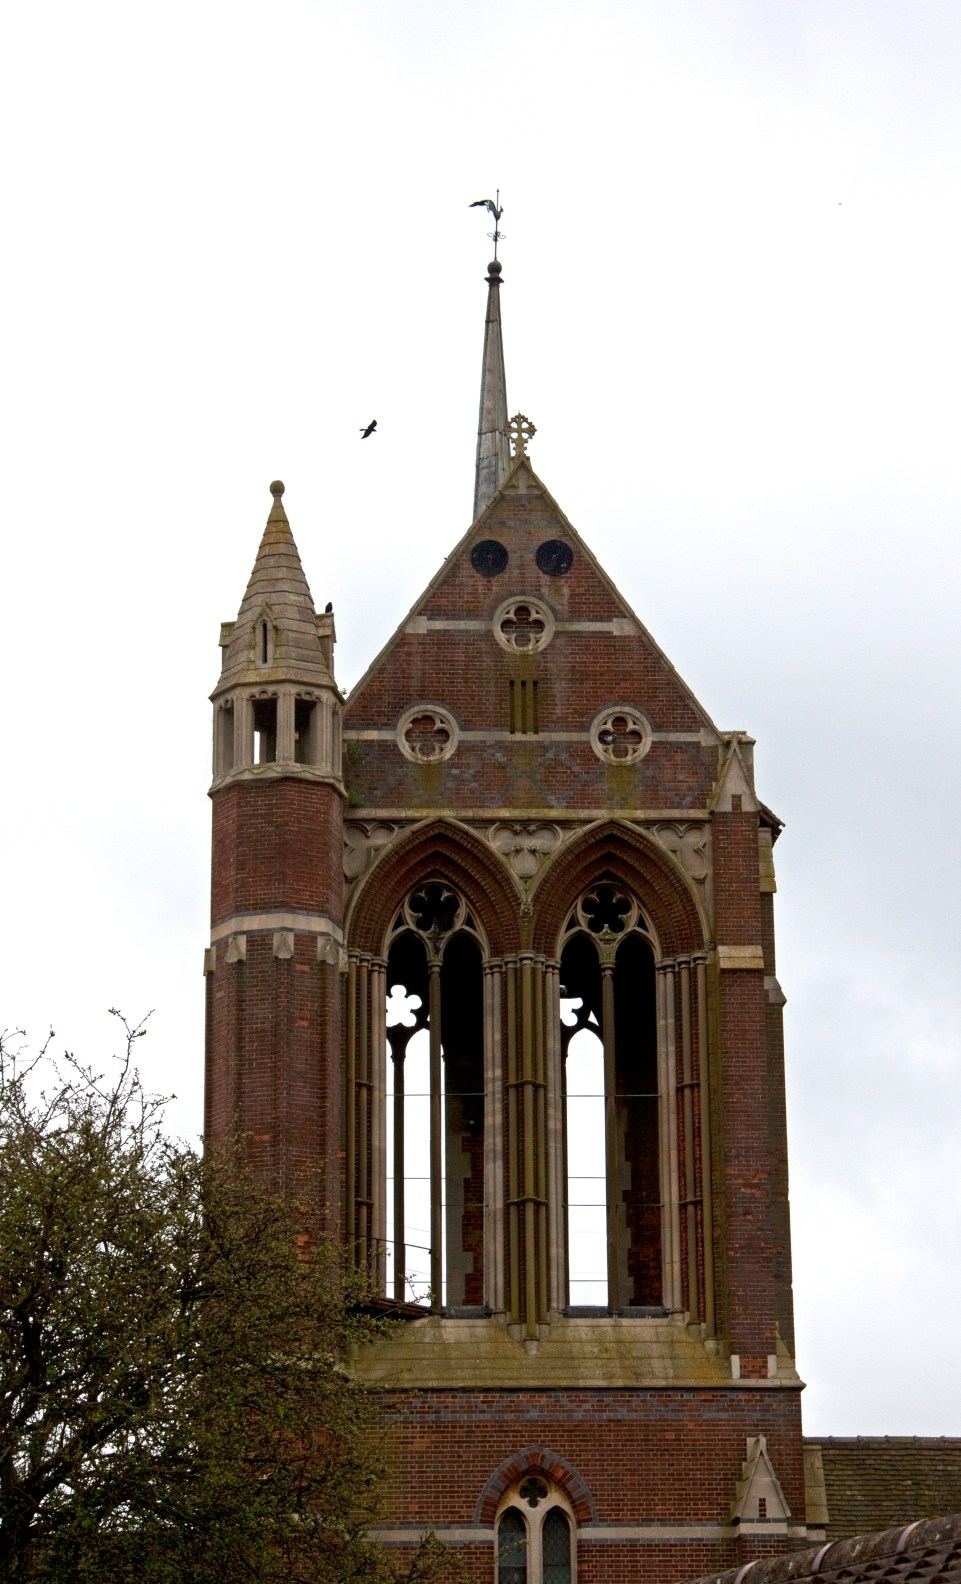 File:Wythall Church Tower (5589766992).jpg - Wikimedia Commons